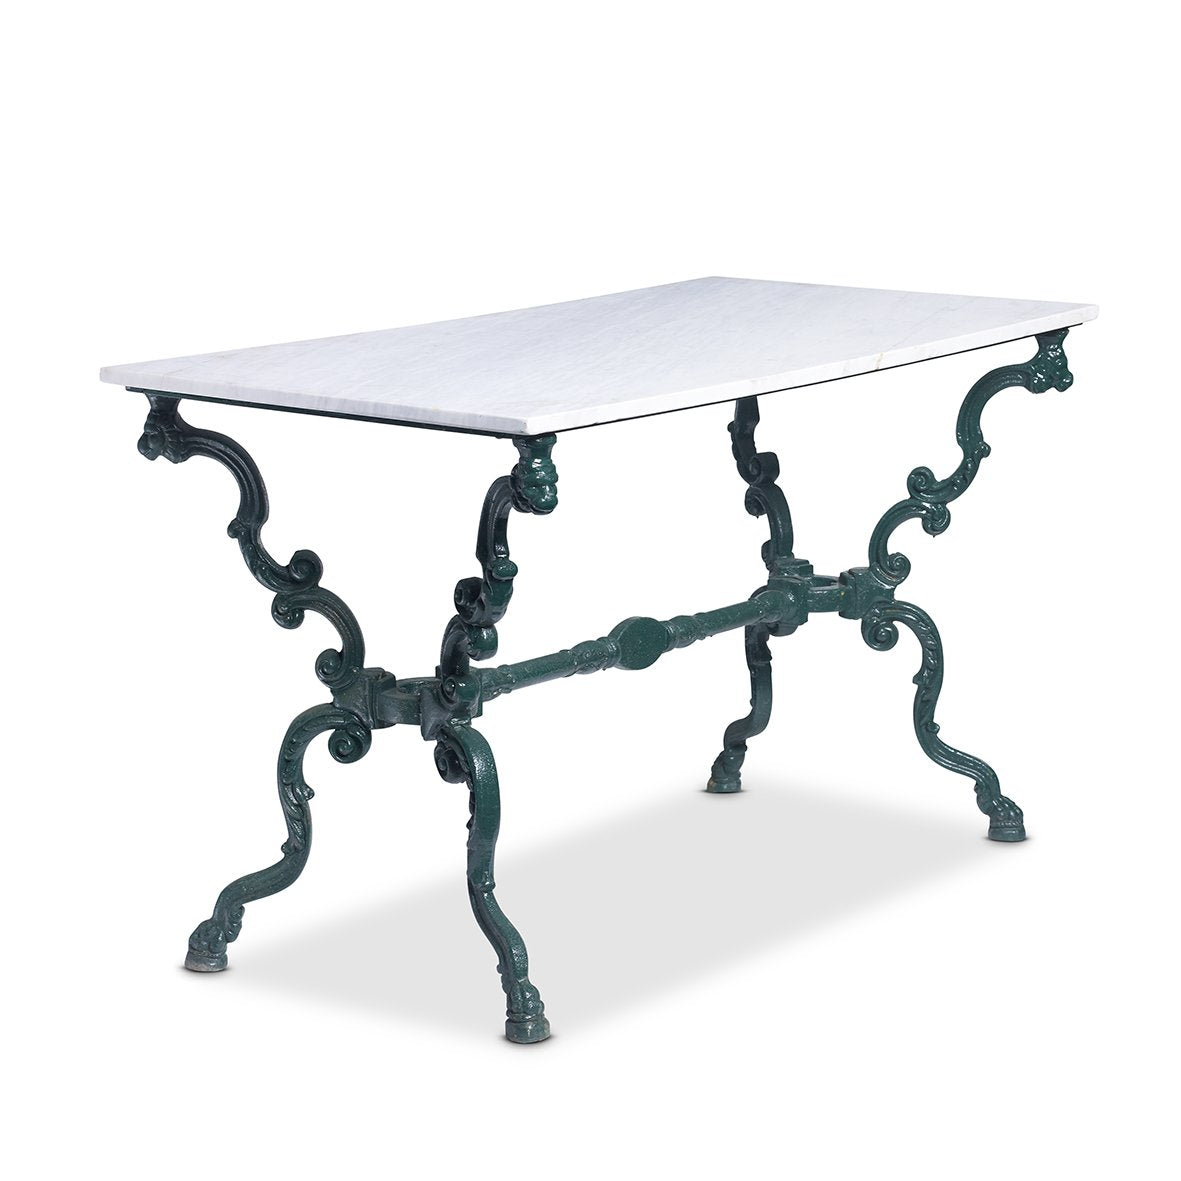 A stylish dark green painted cast iron rectangular garden table, French 19th Century